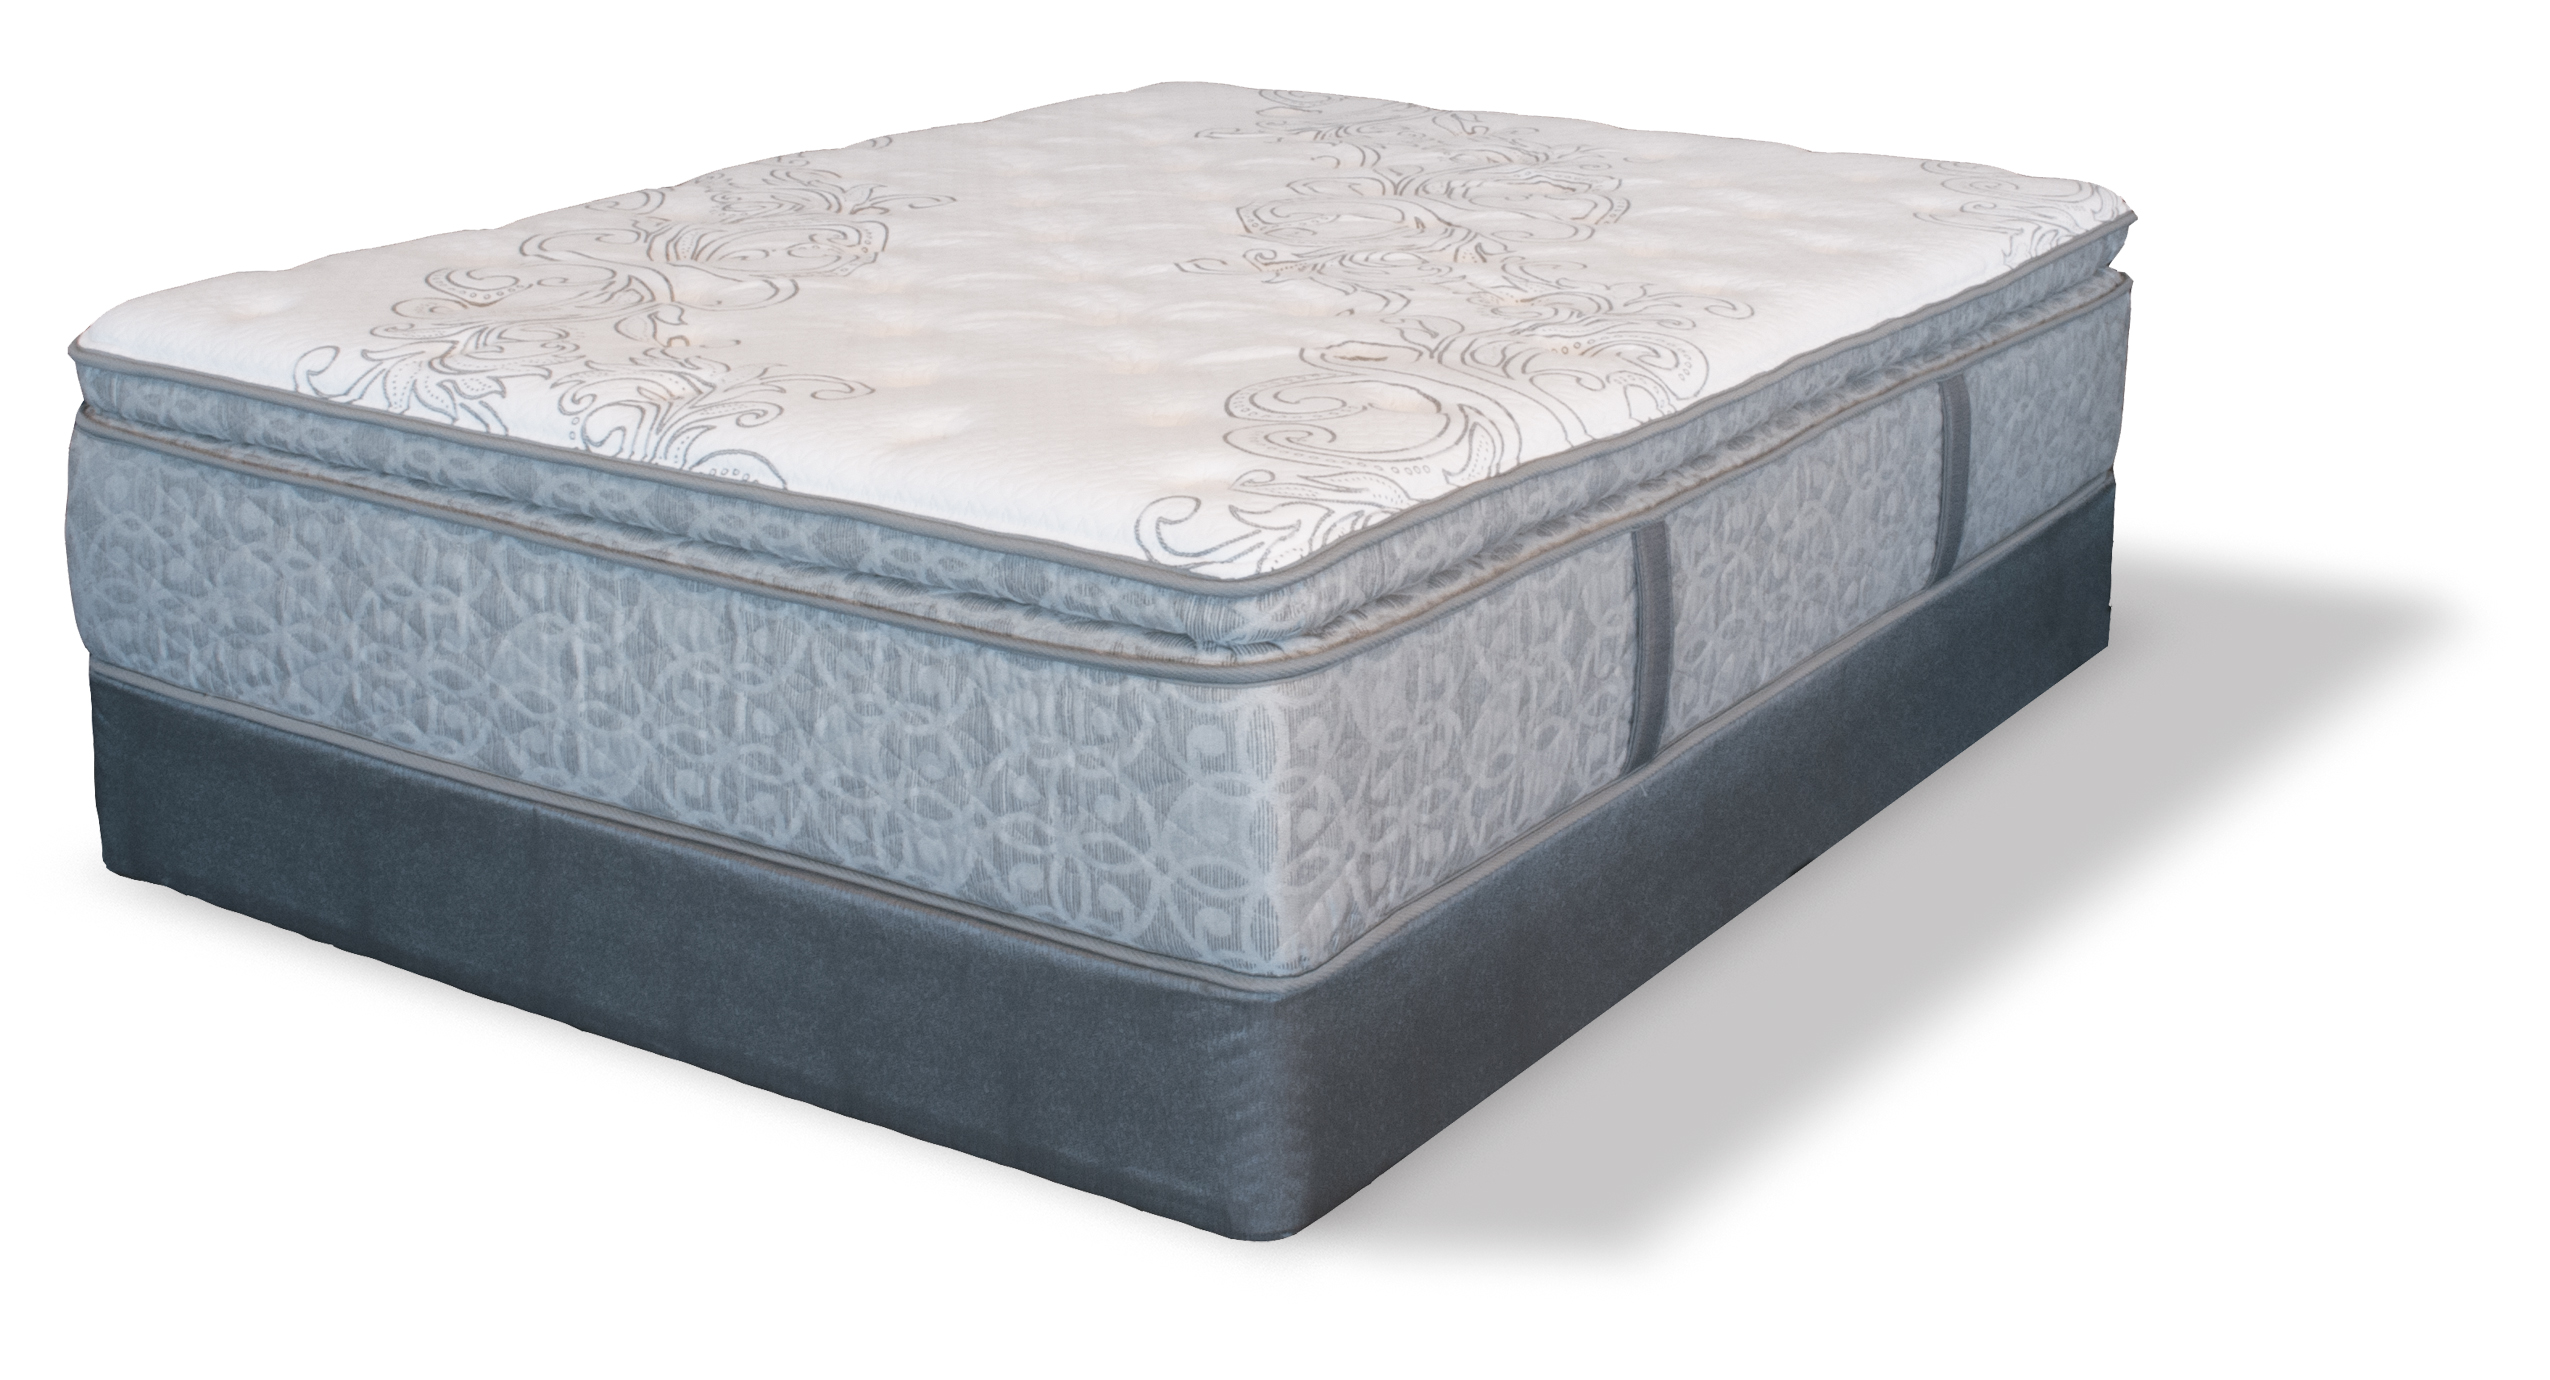 Serta mattress printable coupons